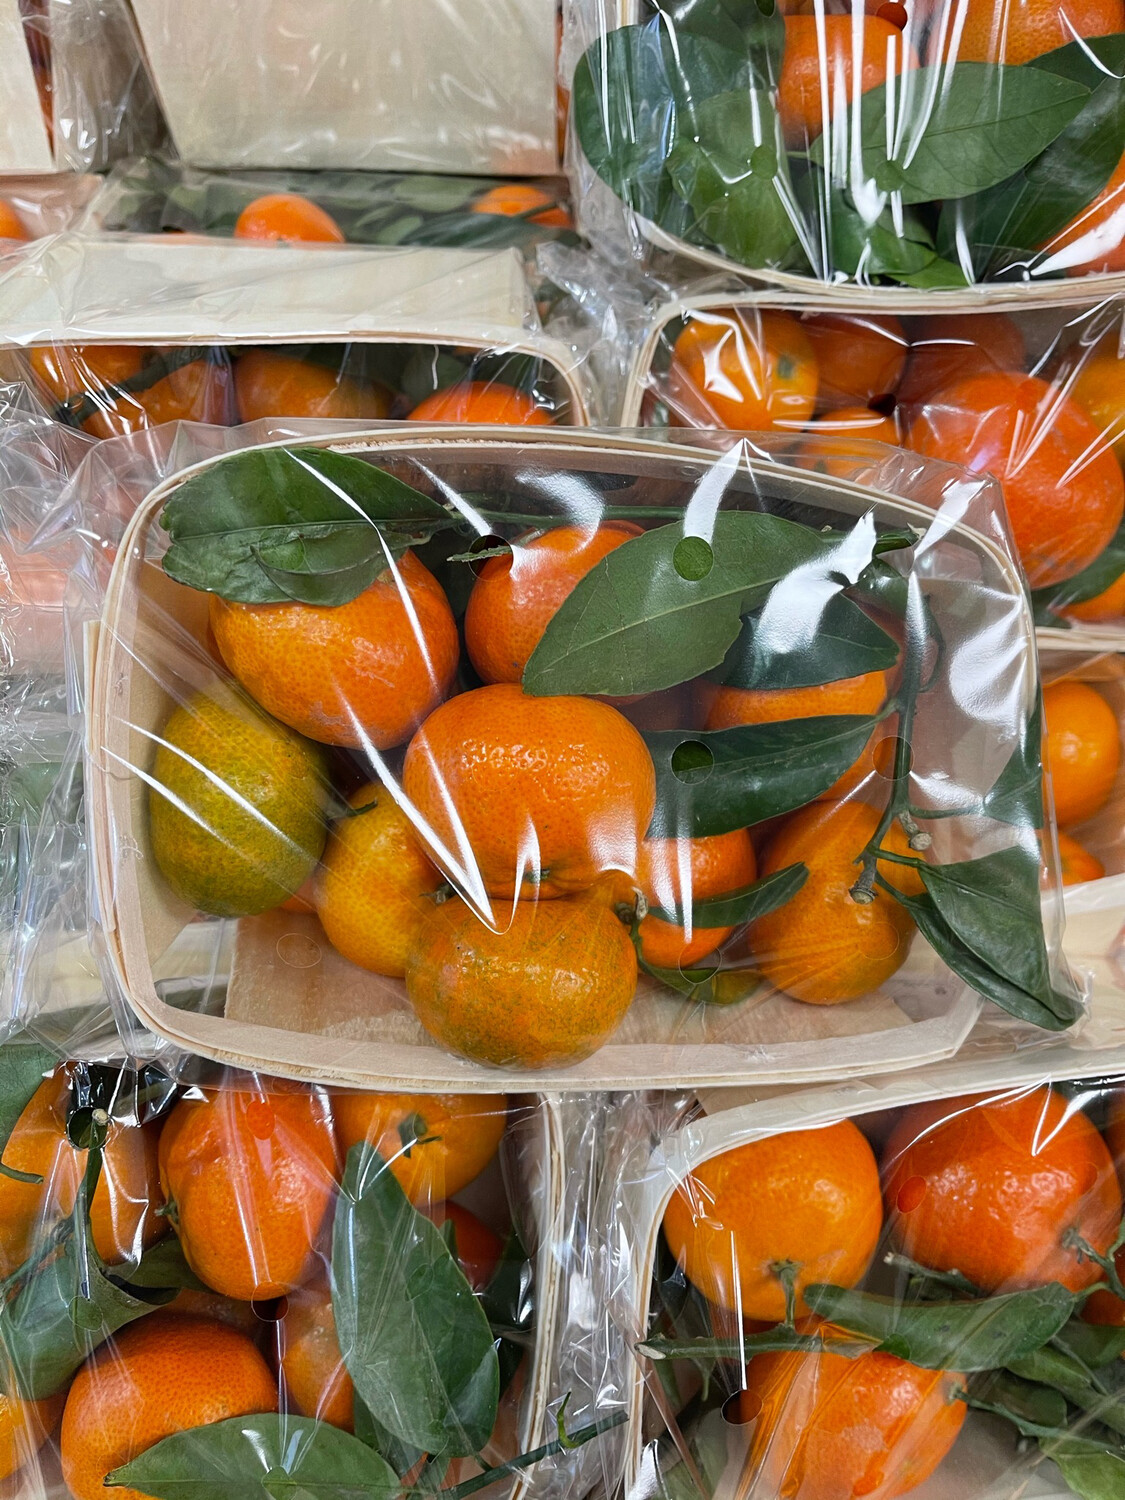 Shoebox Clementines. 2kg.  Approx. 35 fruits